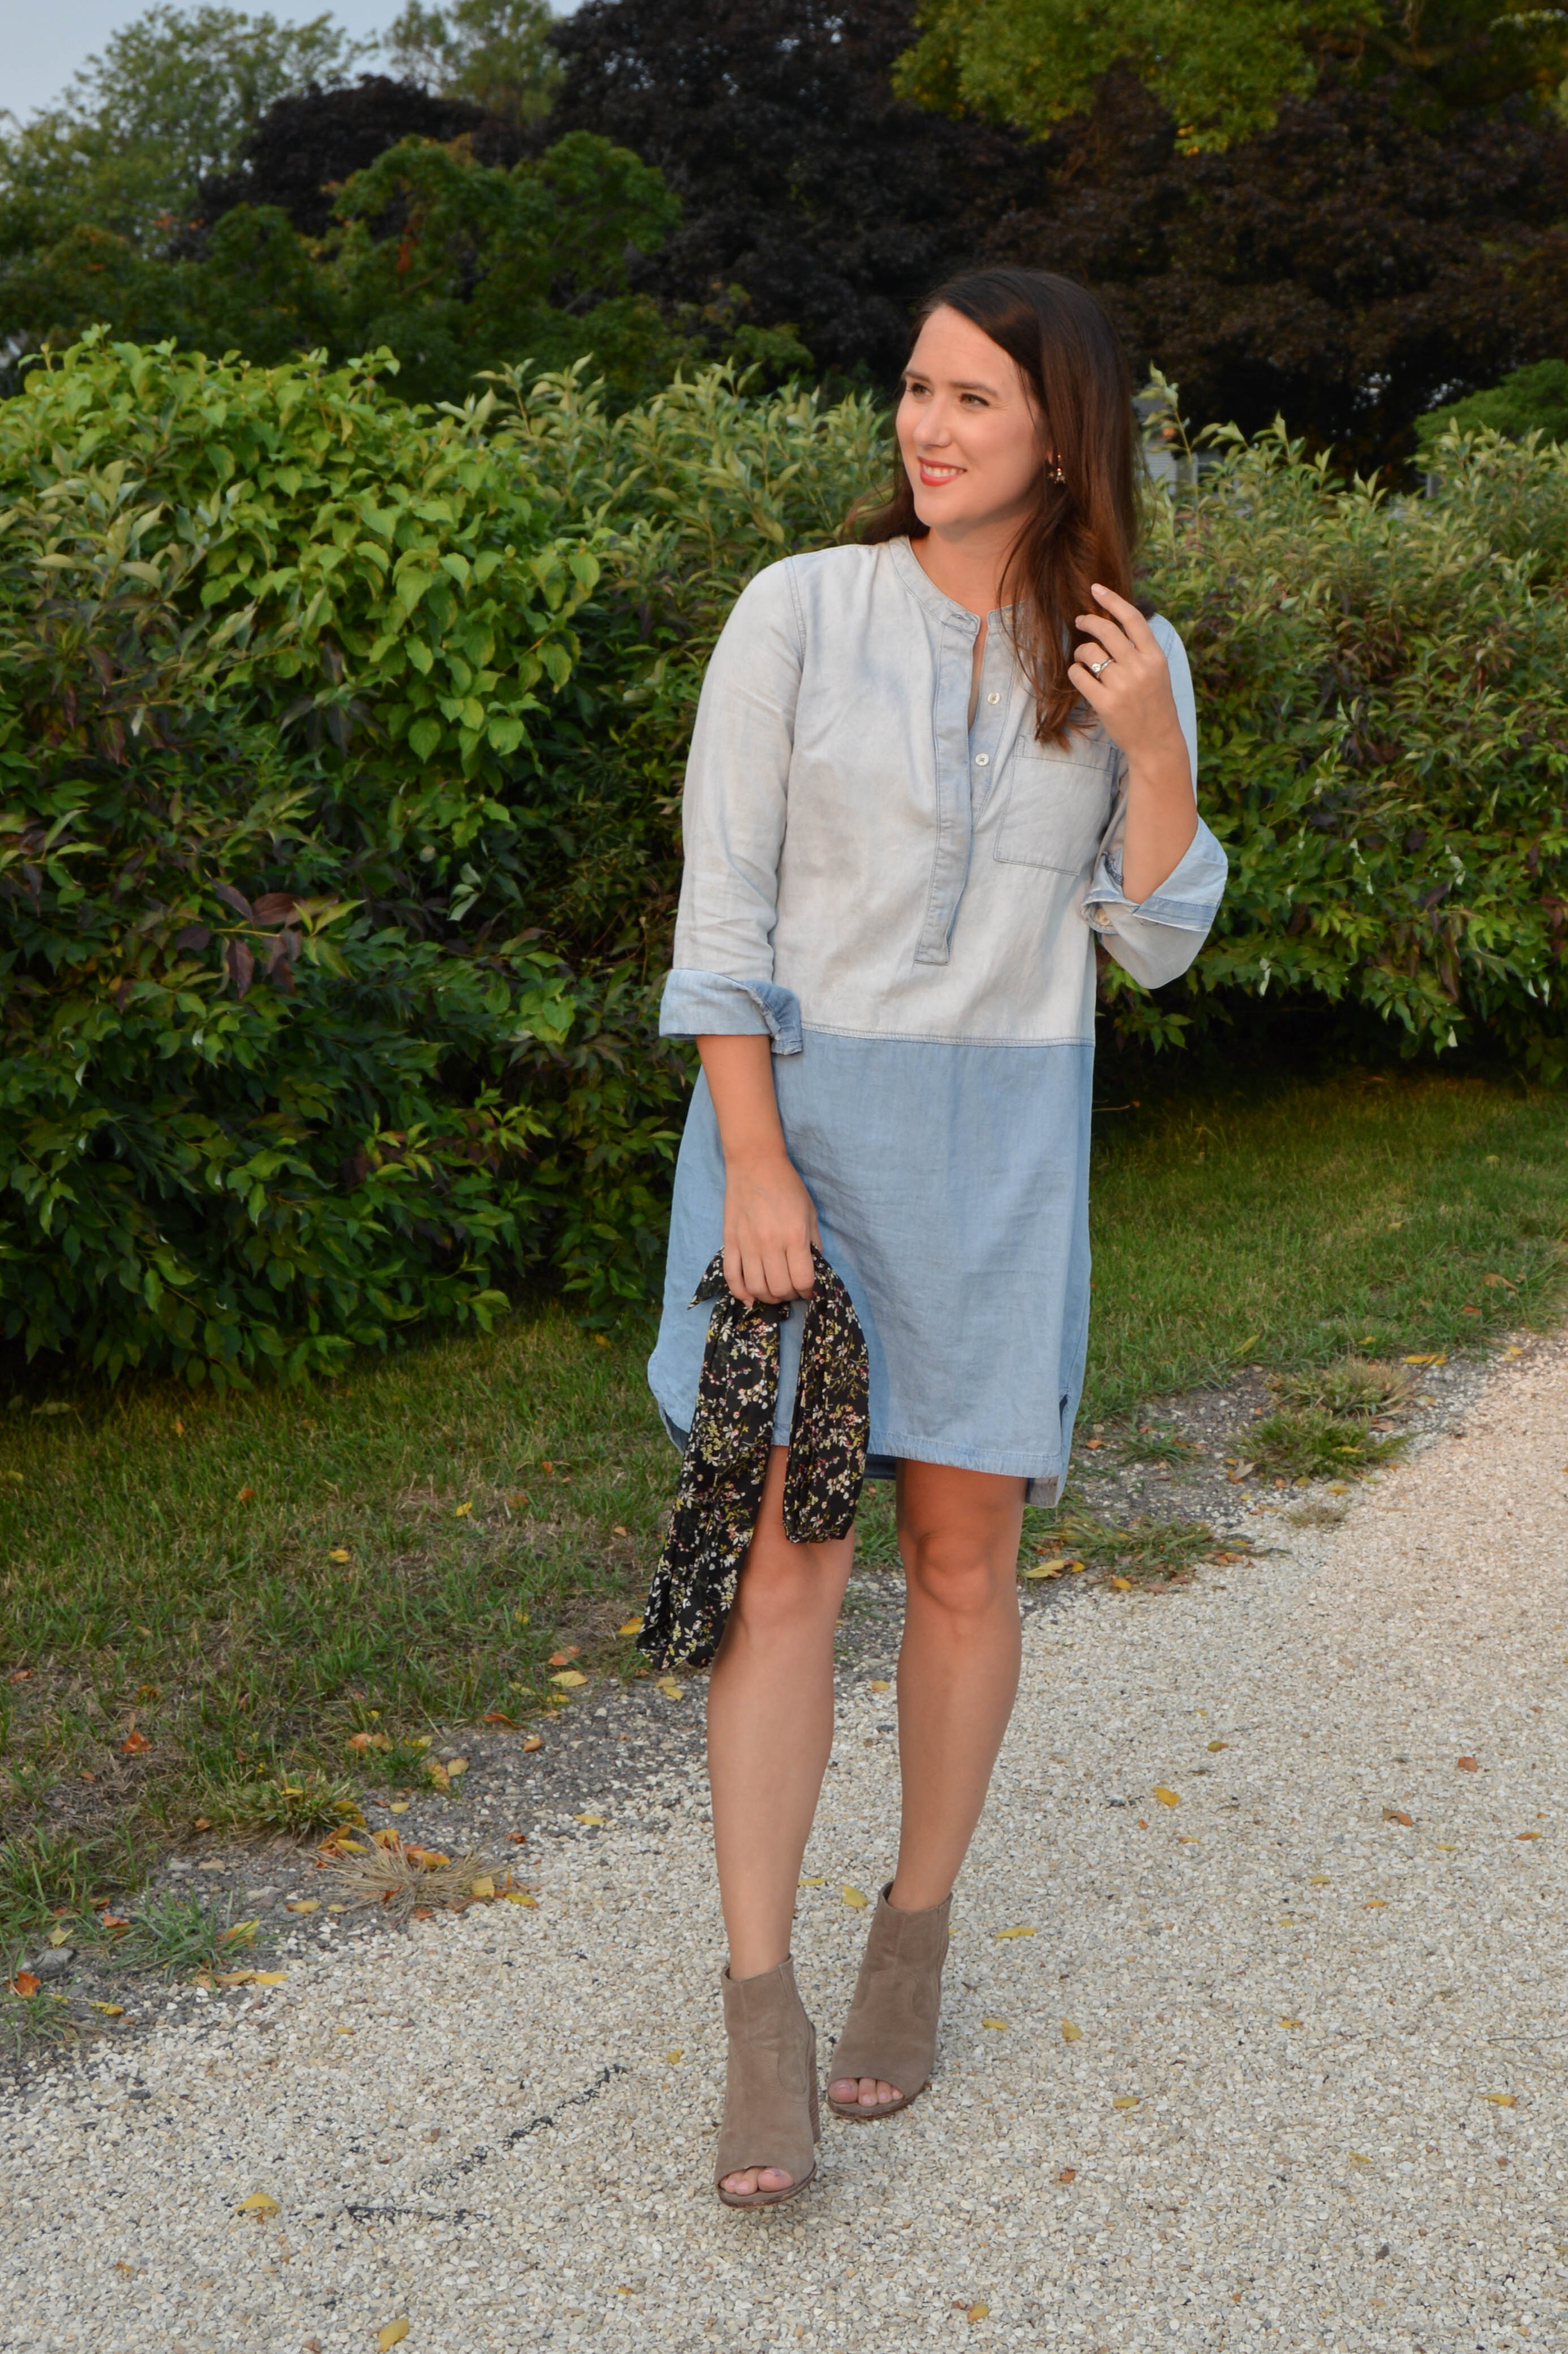 denim dress - women's fall fashion